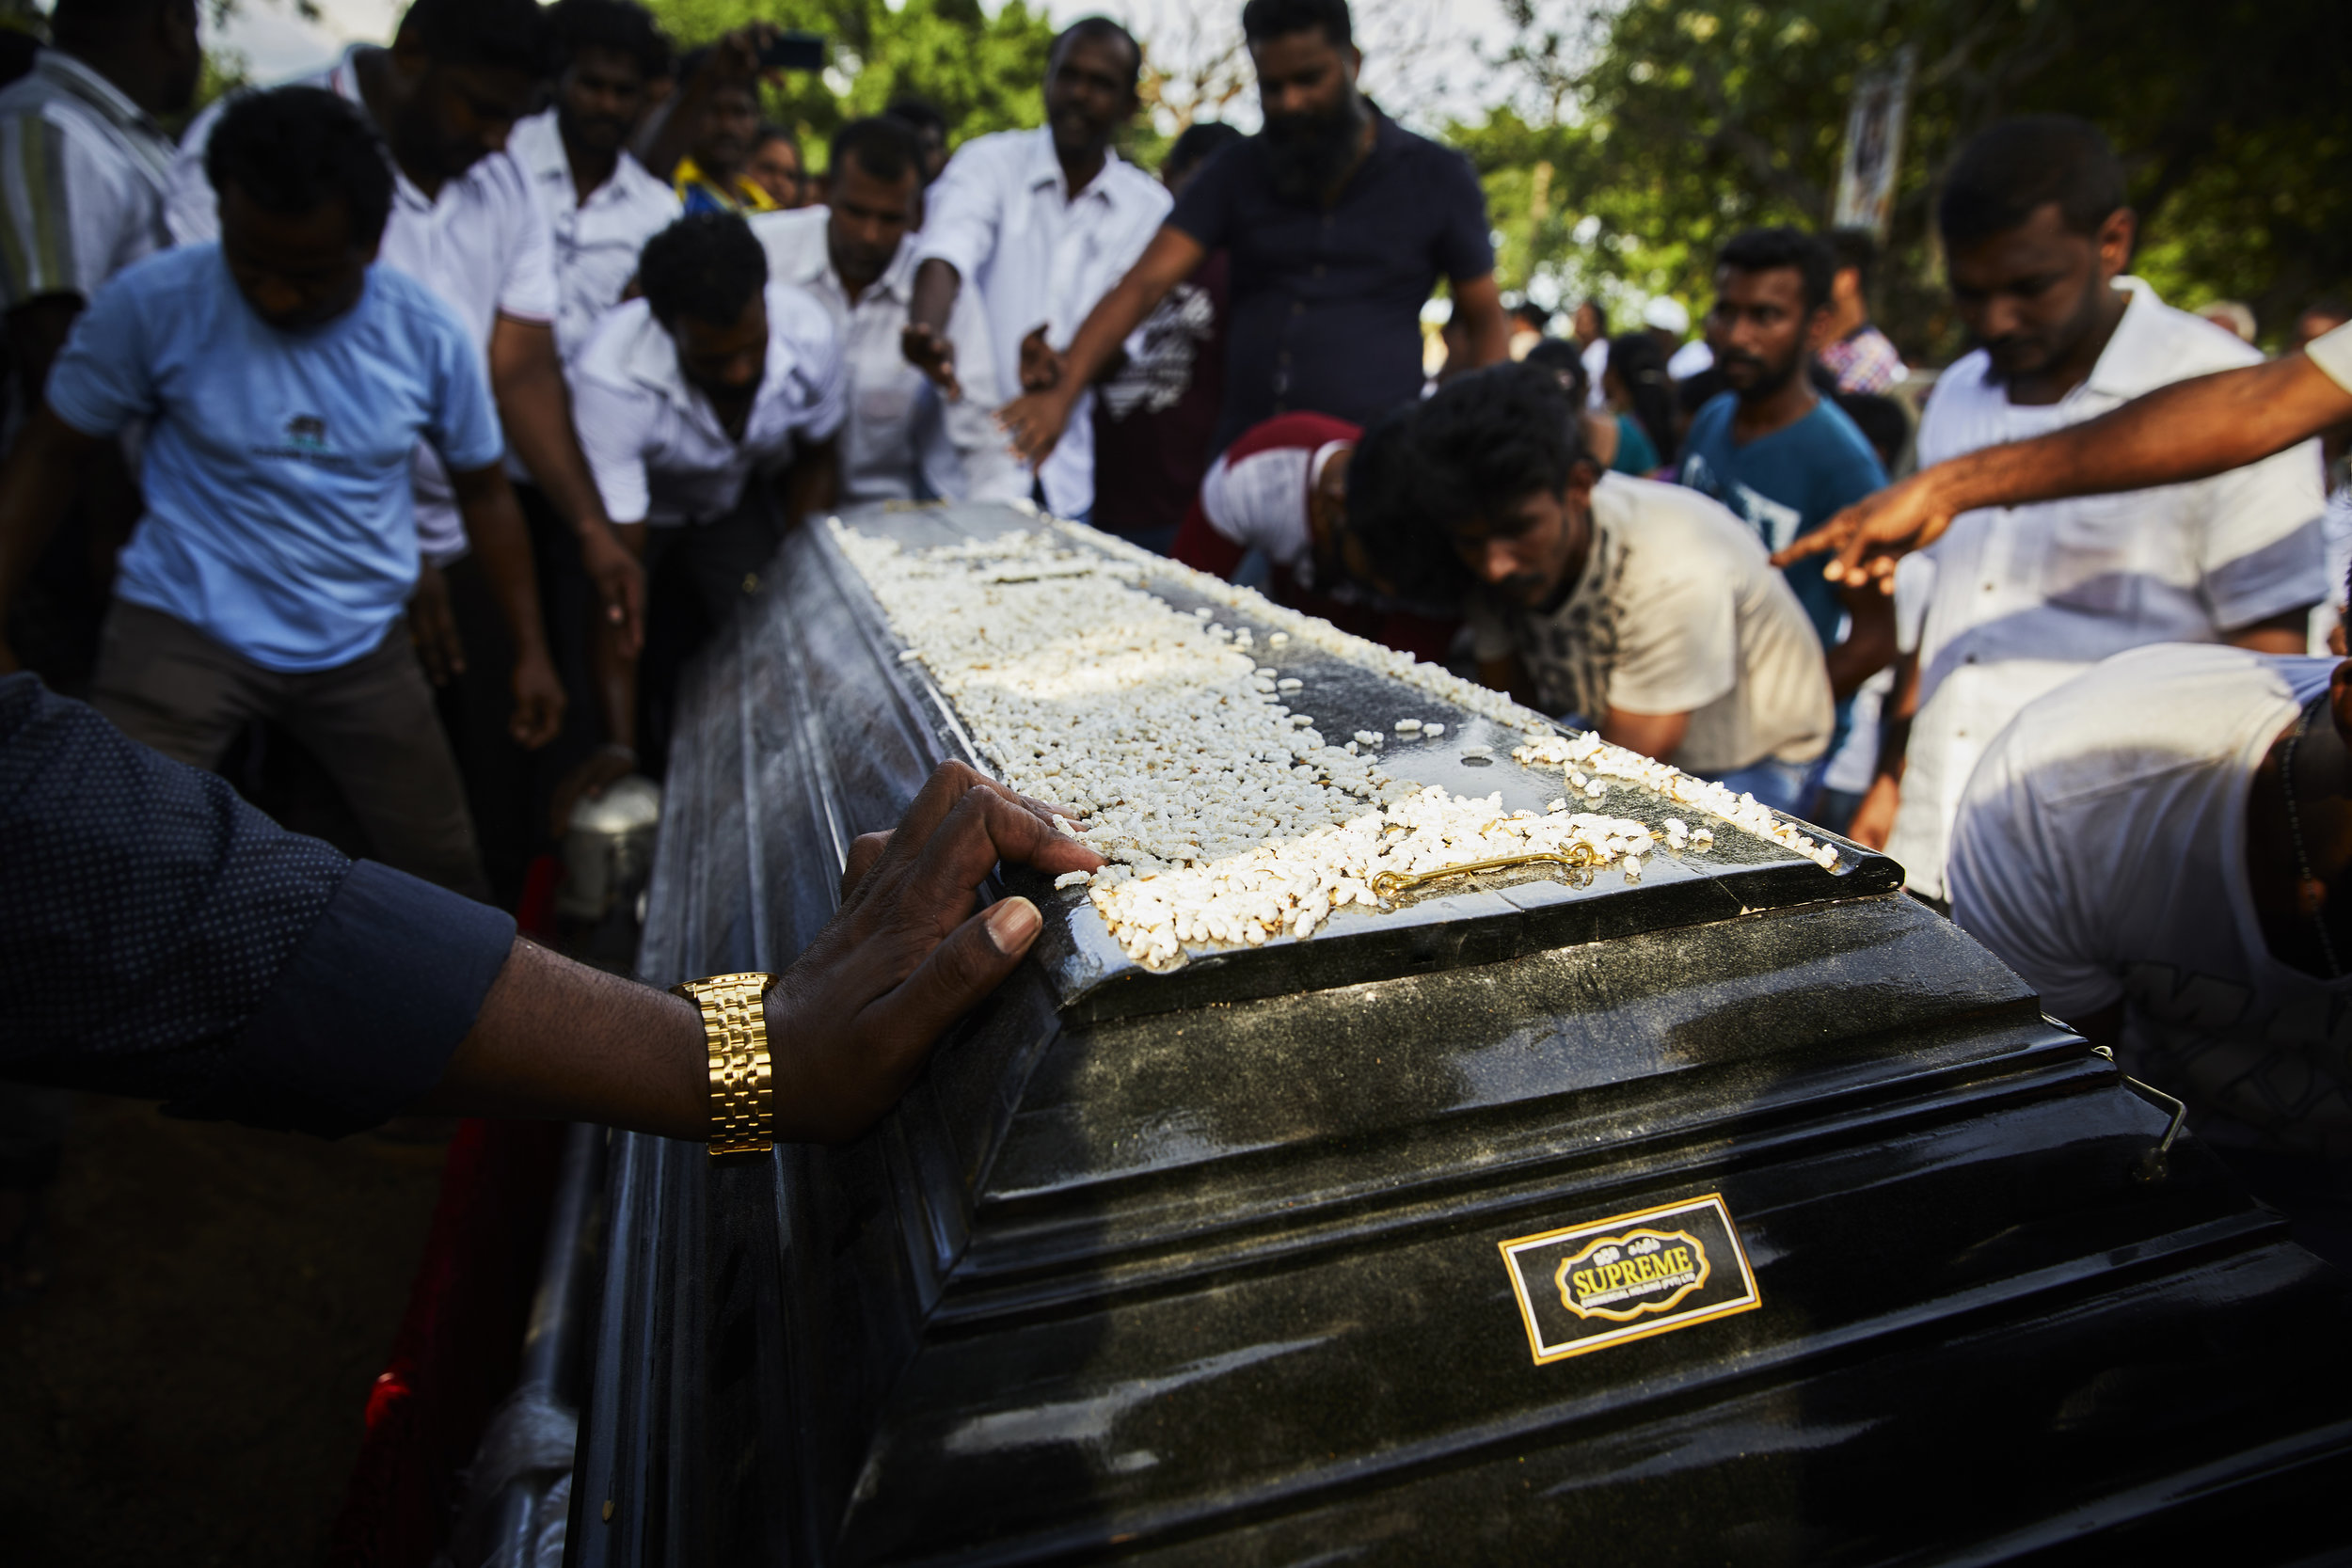 Family and Friends carry the casket of deceased,Loganathan Ramesh, 31 yrs old, who died on April 21,2019 in the St.Anthony's Bomb explosion on easter Sunday. They will take the casket to his local church for blessings and then on to the cemetary for burial.